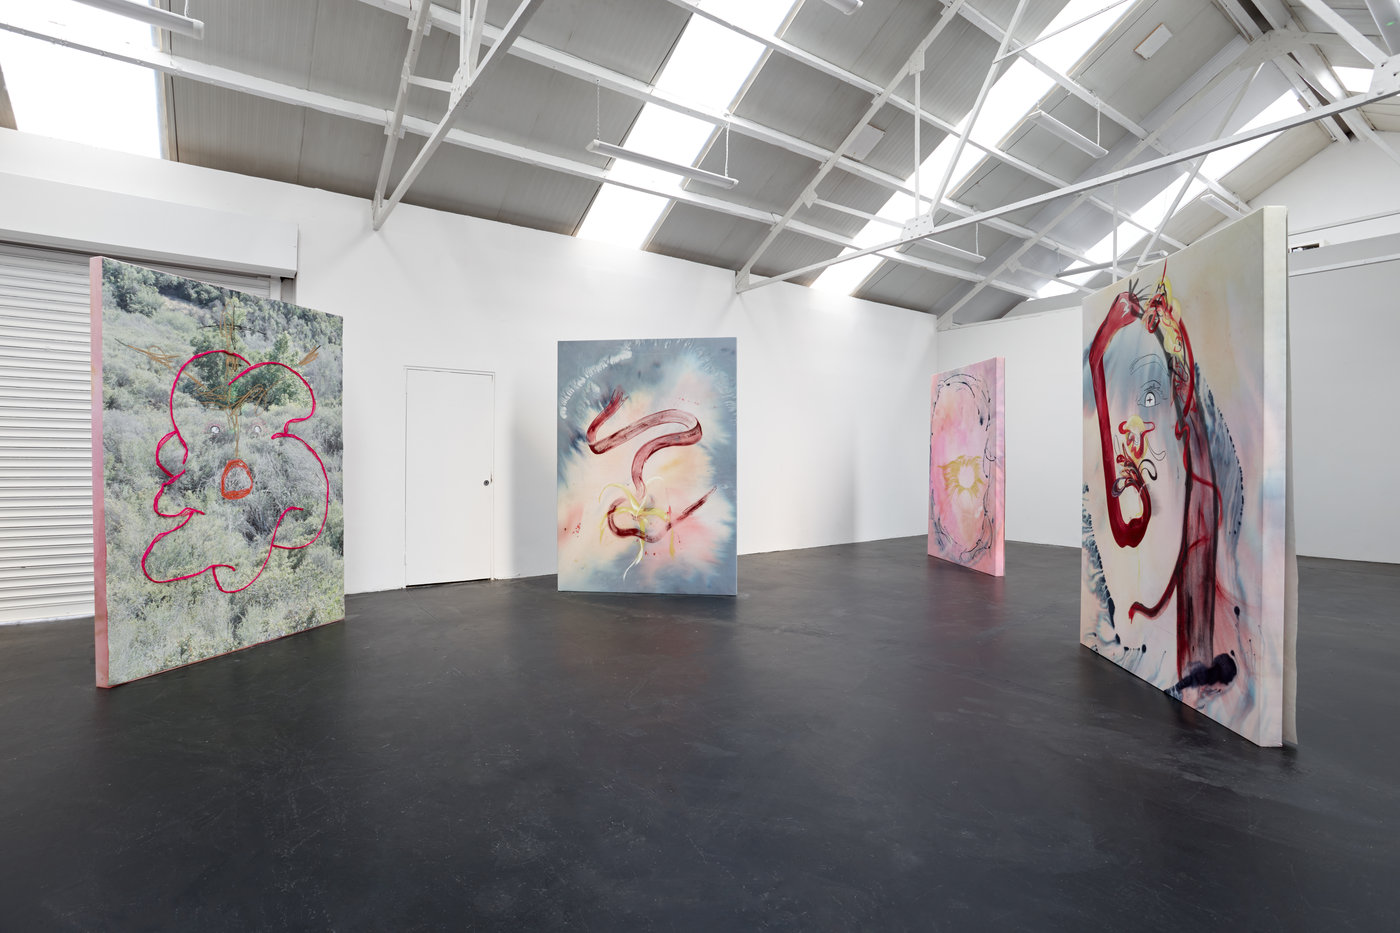 12.-Nora-Berman-Charm-Installation-View-XII